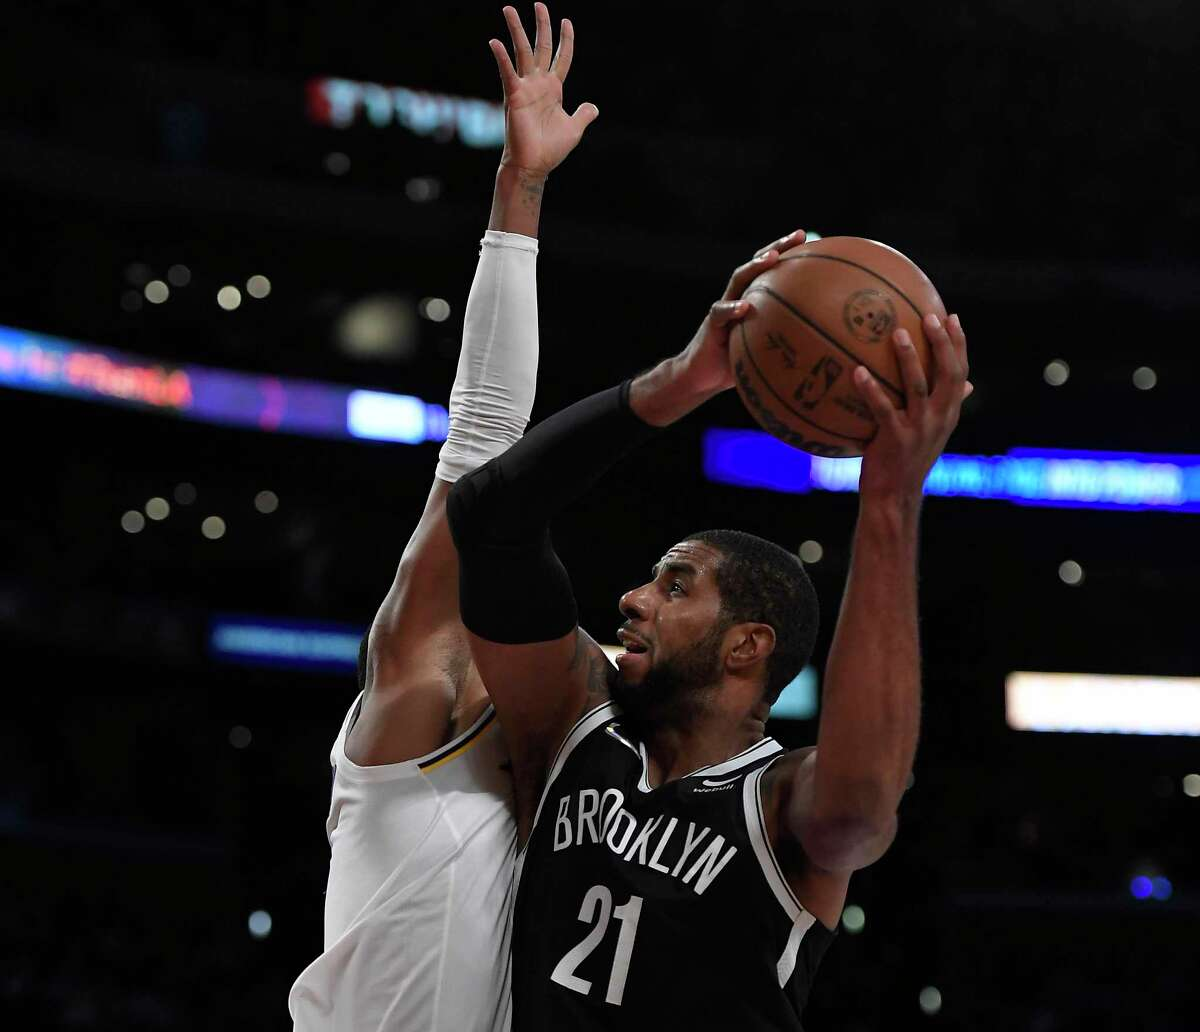 LaMarcus Aldridge, a former Spur and UT standout, made his preseason debut with the Brooklyn Nets on Sunday after a heart condition forced him to step away last season.